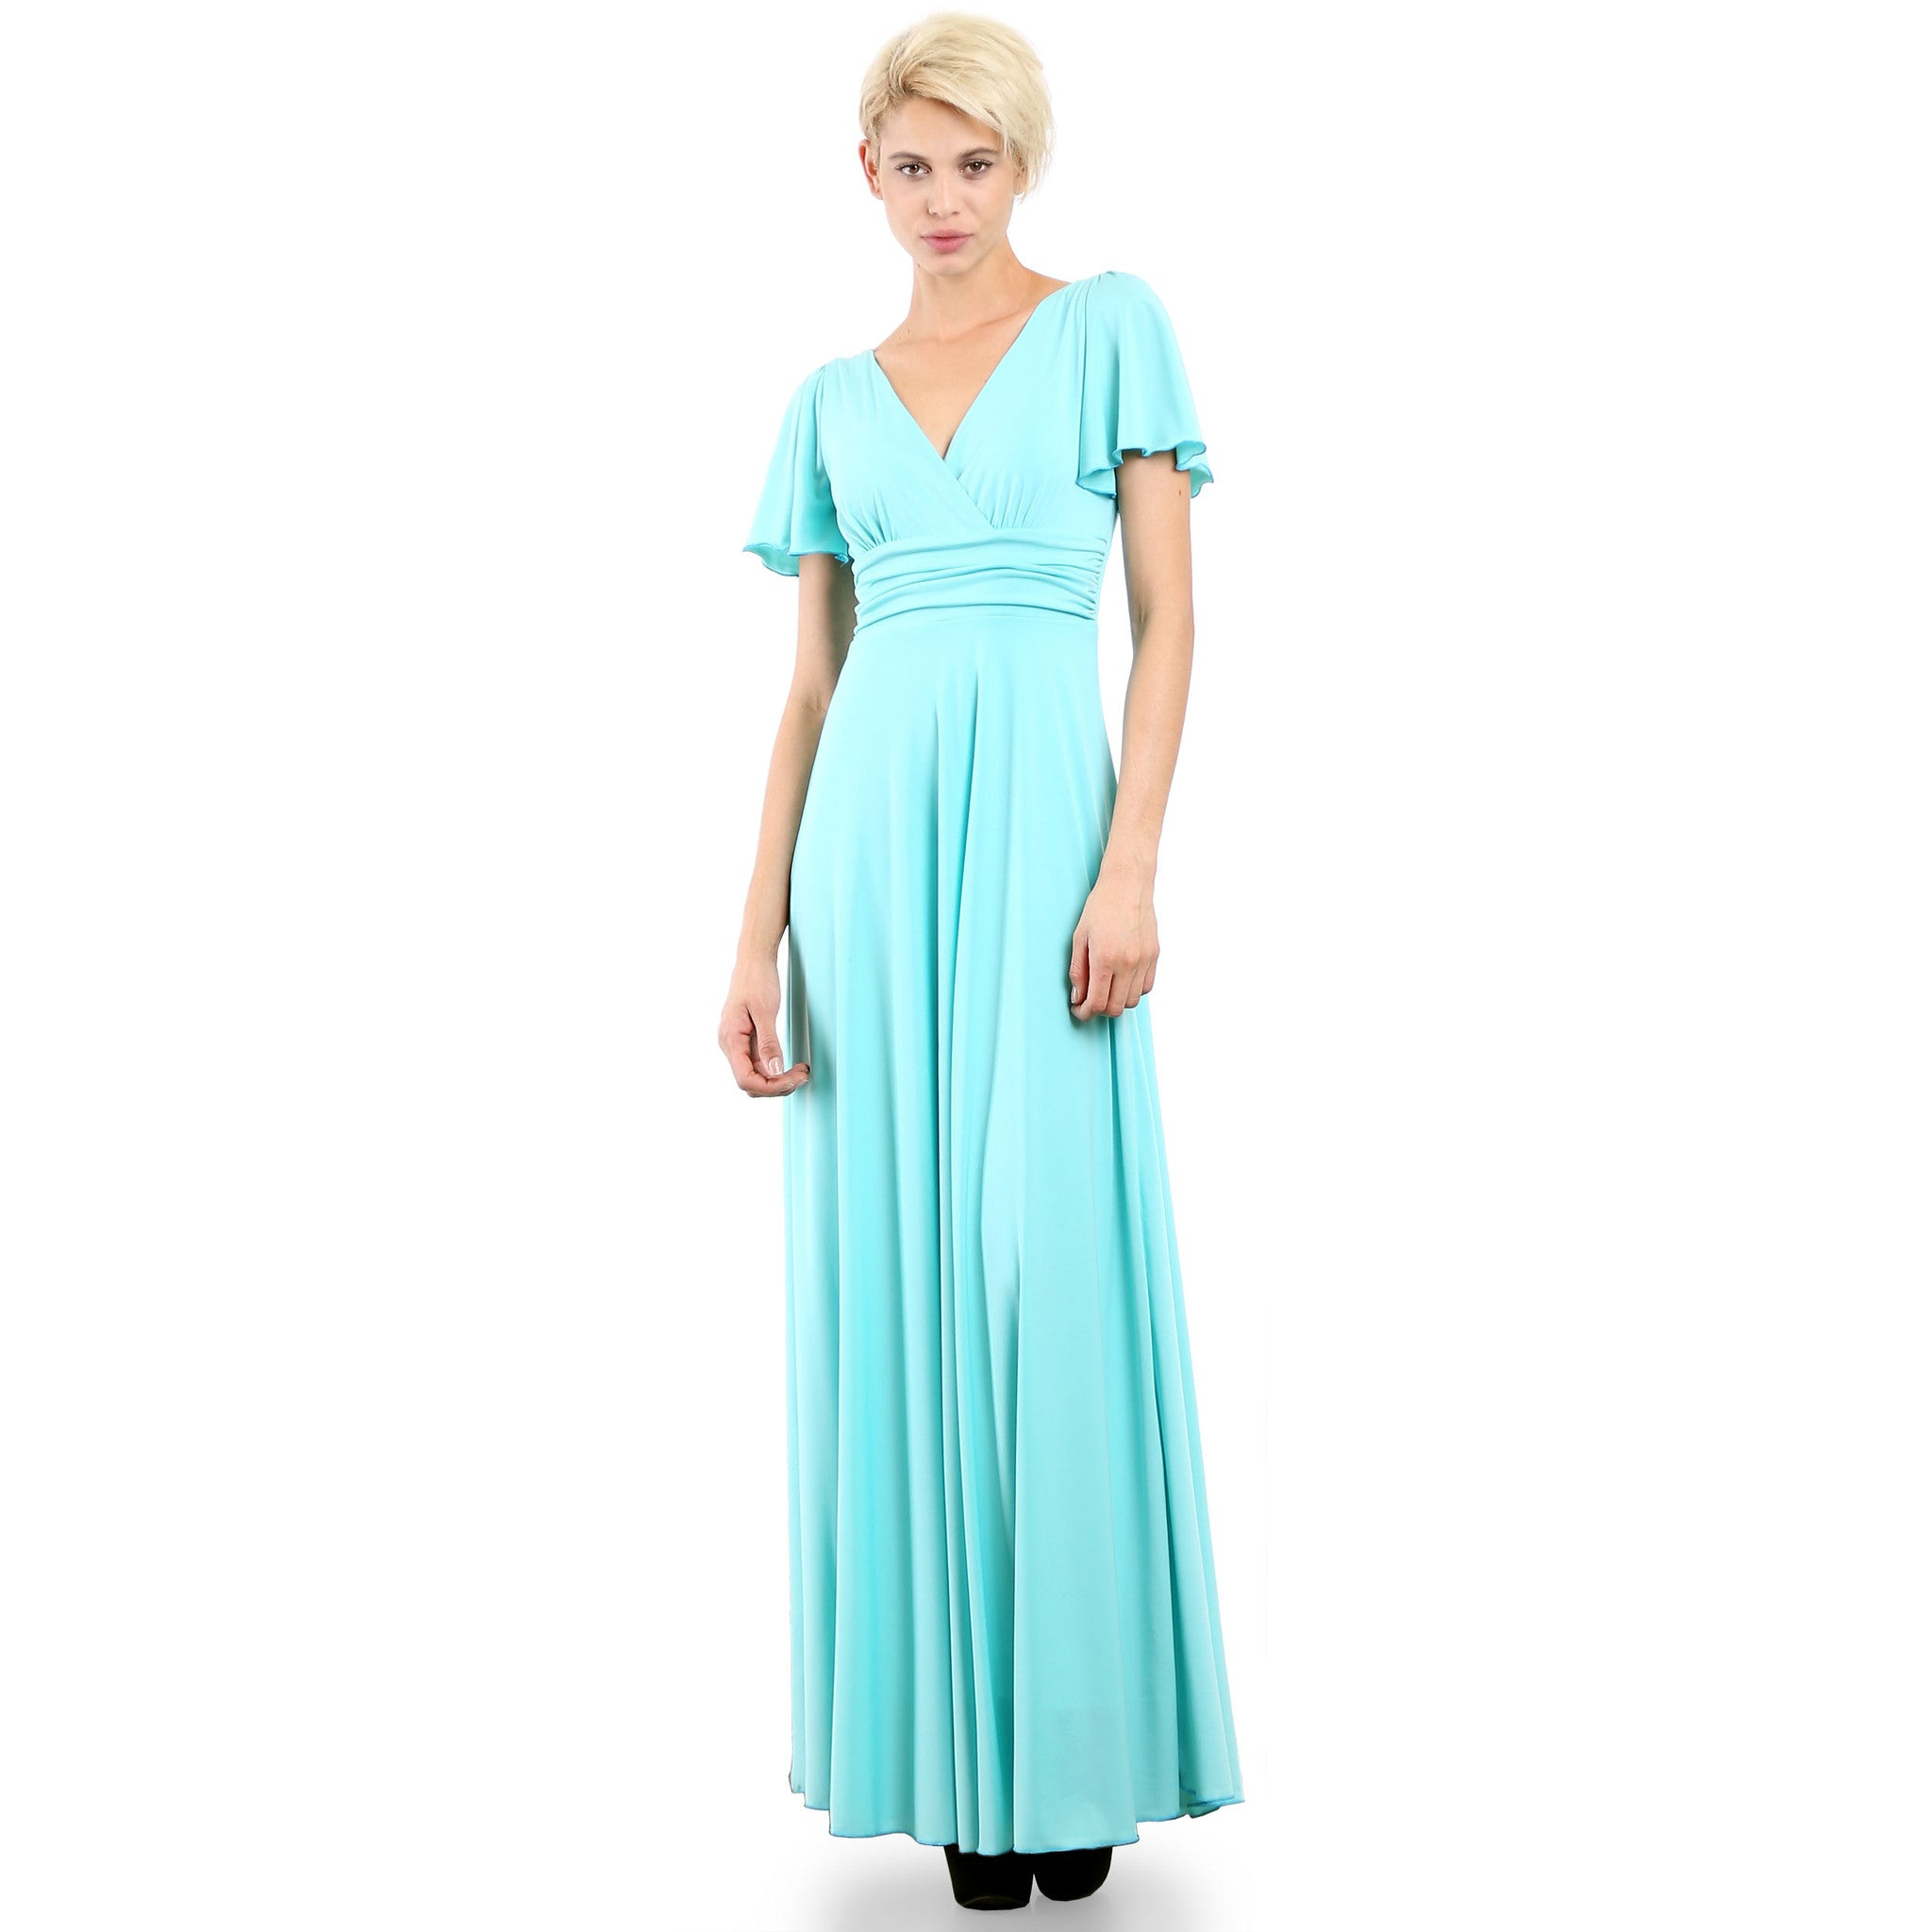 Evanese Women's Slip on Evening Party Formal Long Dress Gown with Short Sleeves Mint Front plus size